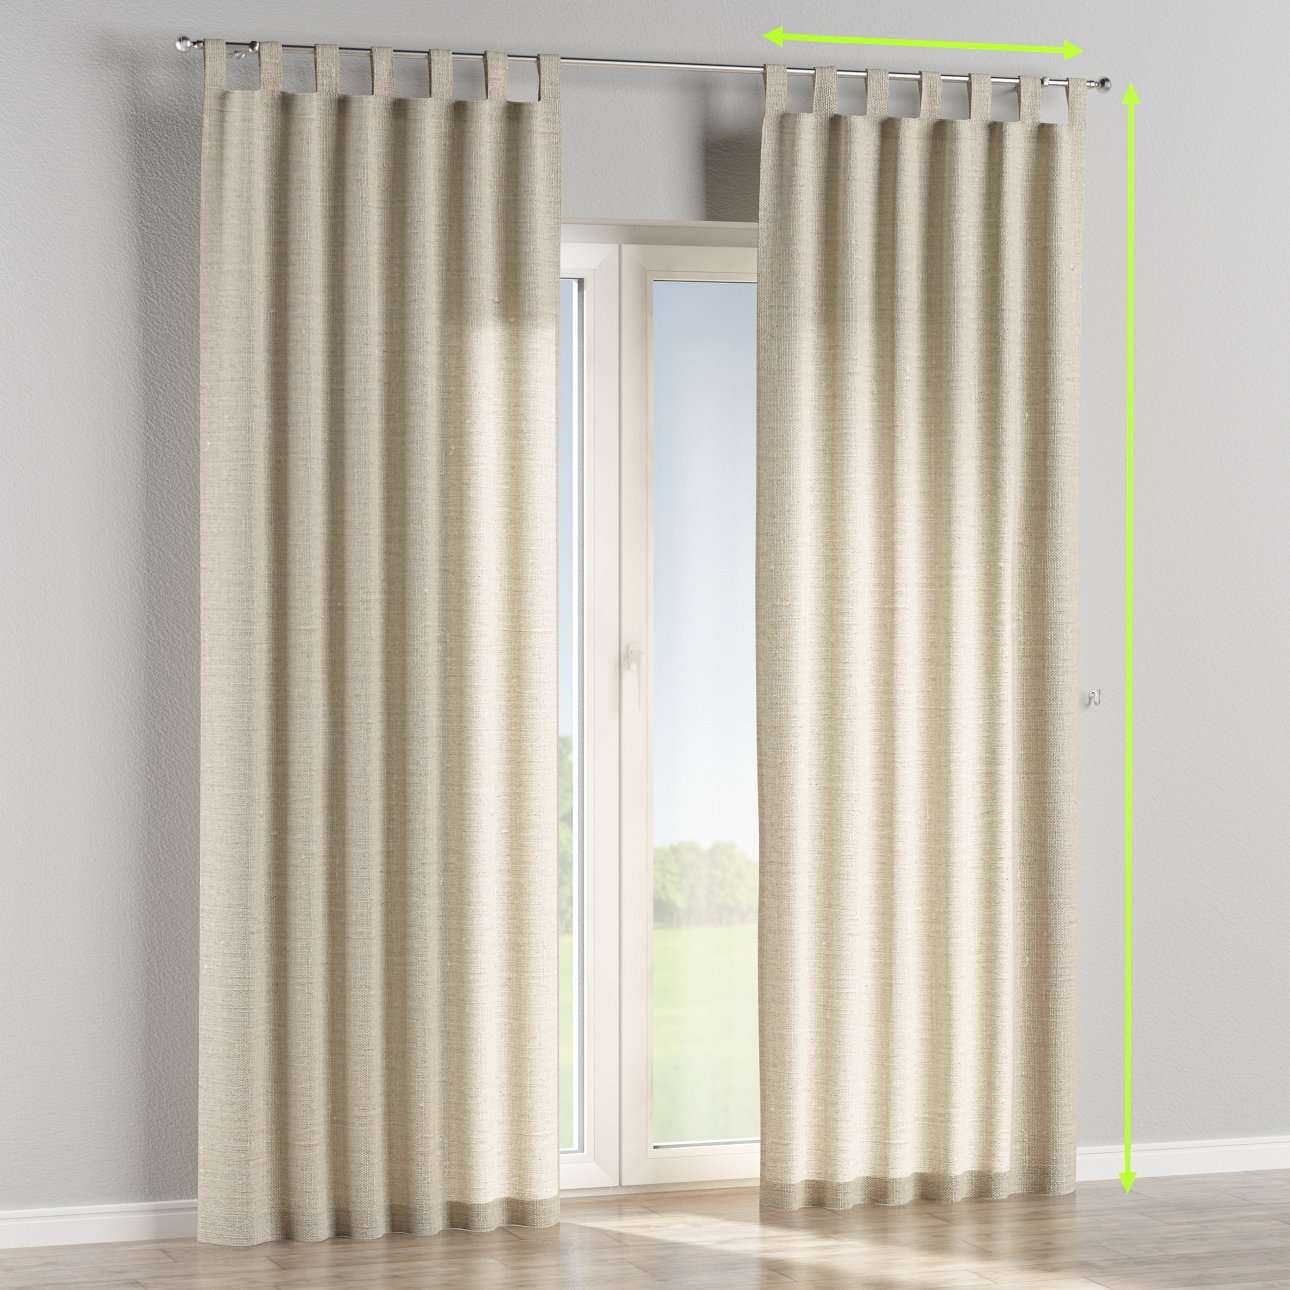 Tab top curtains in collection Linen , fabric: 392-05